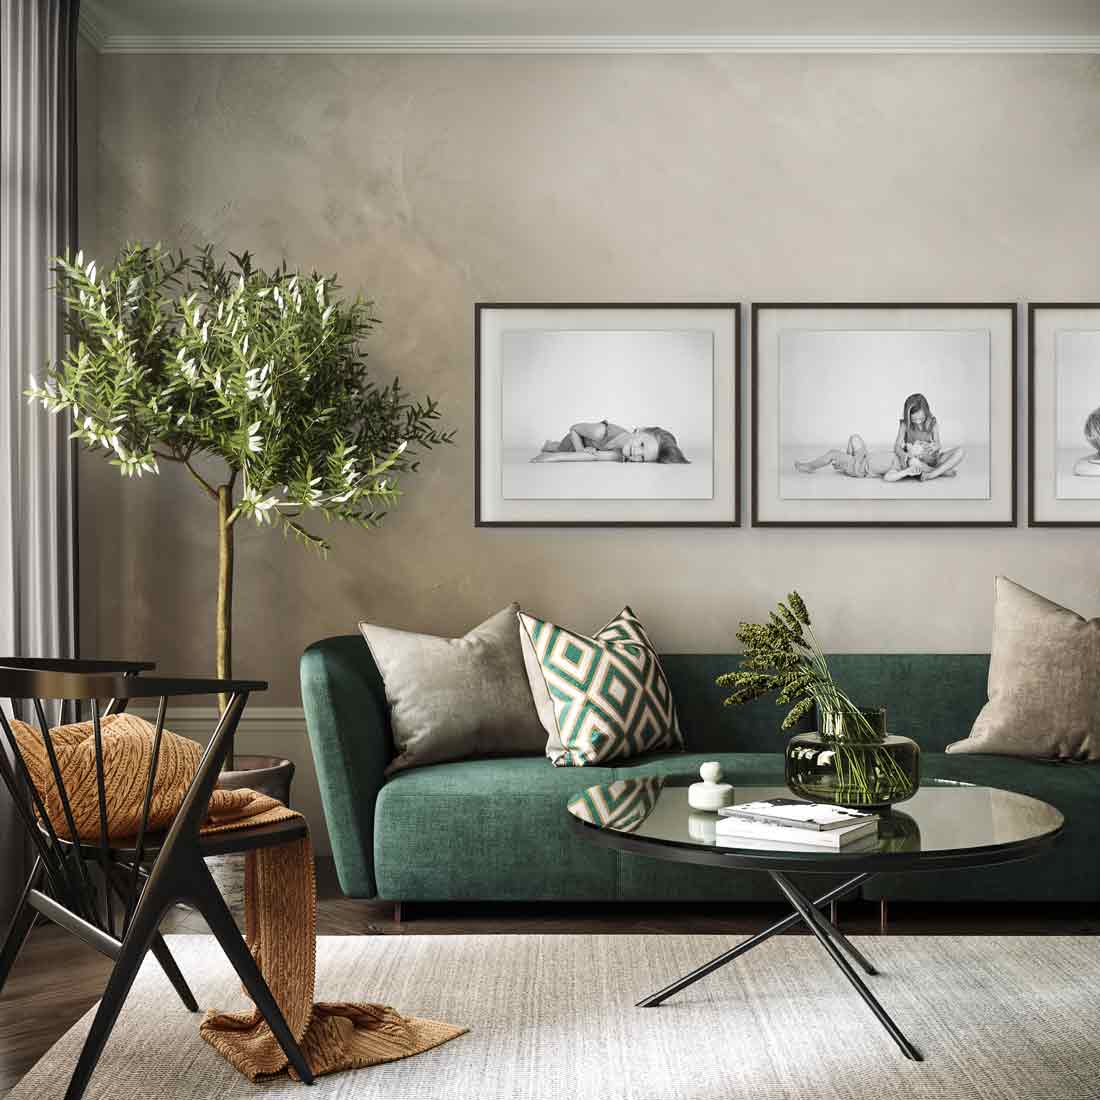 Three of our large framed prints look amazing and complement this chic and elegant interior